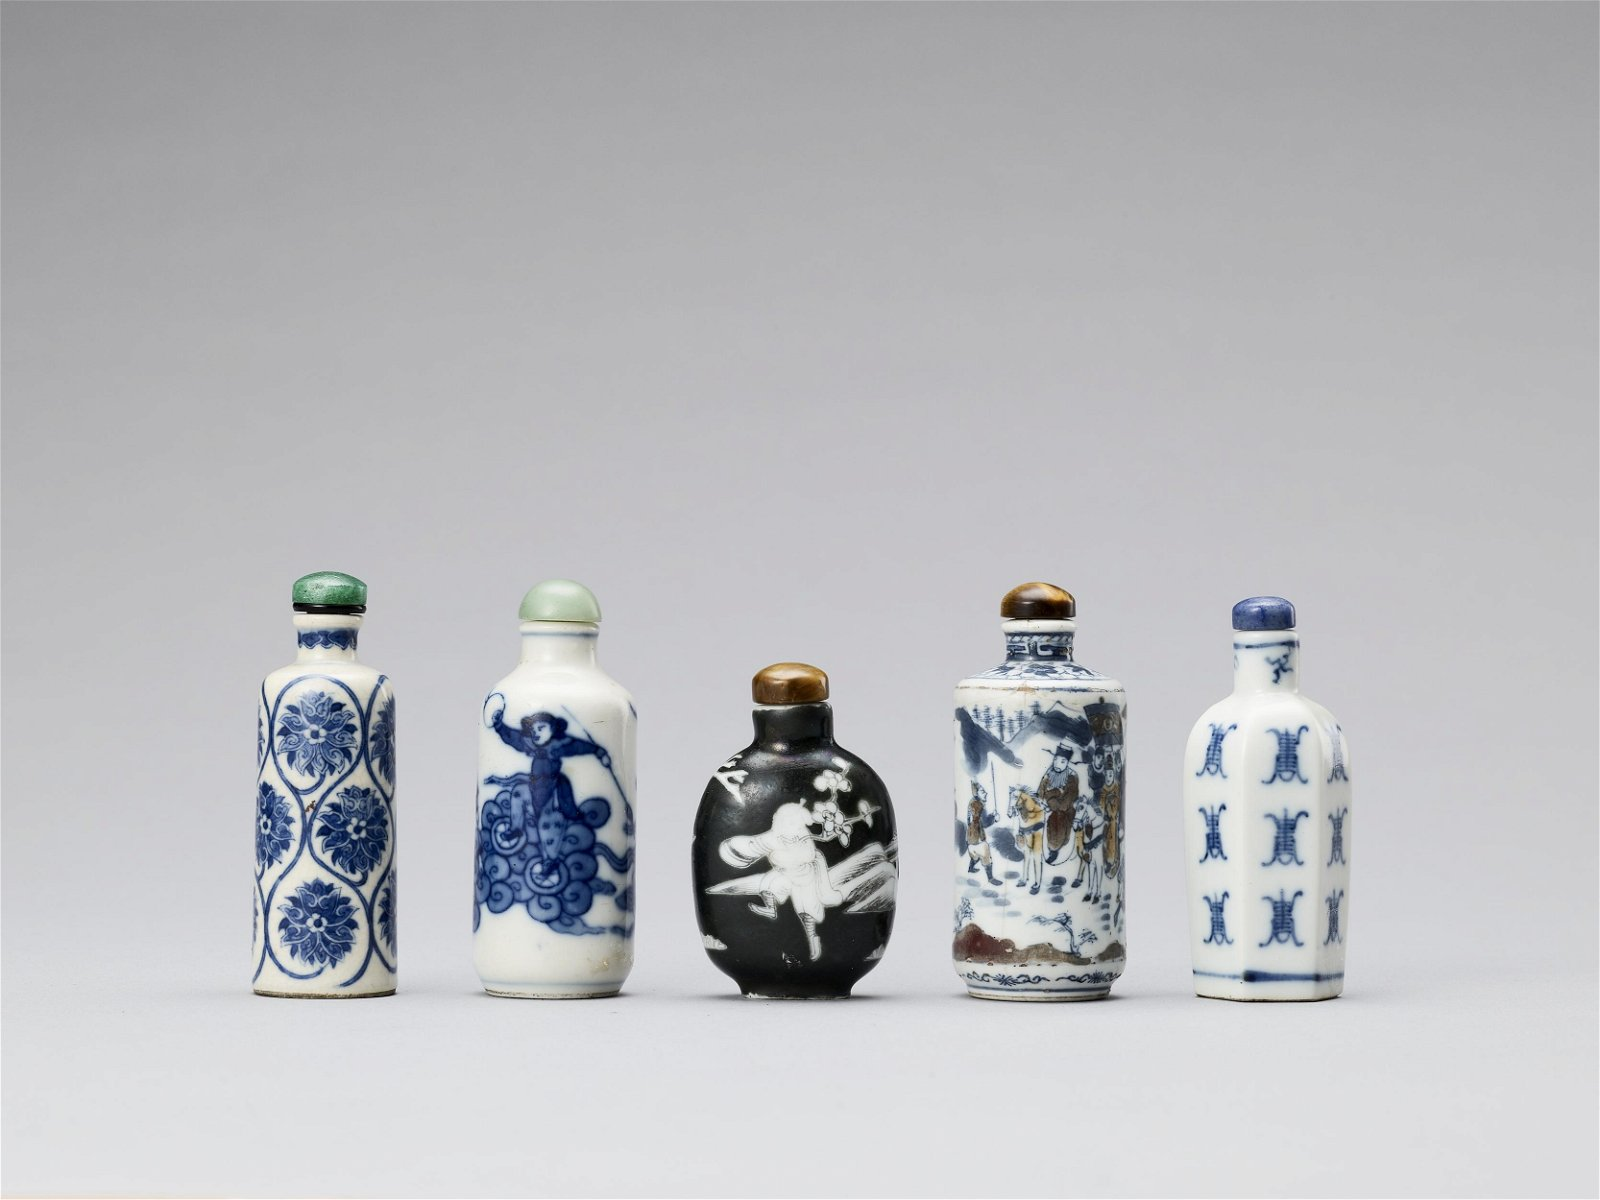 A GROUP OF 5 PORCELAIN SNUFF BOTTLES, QING